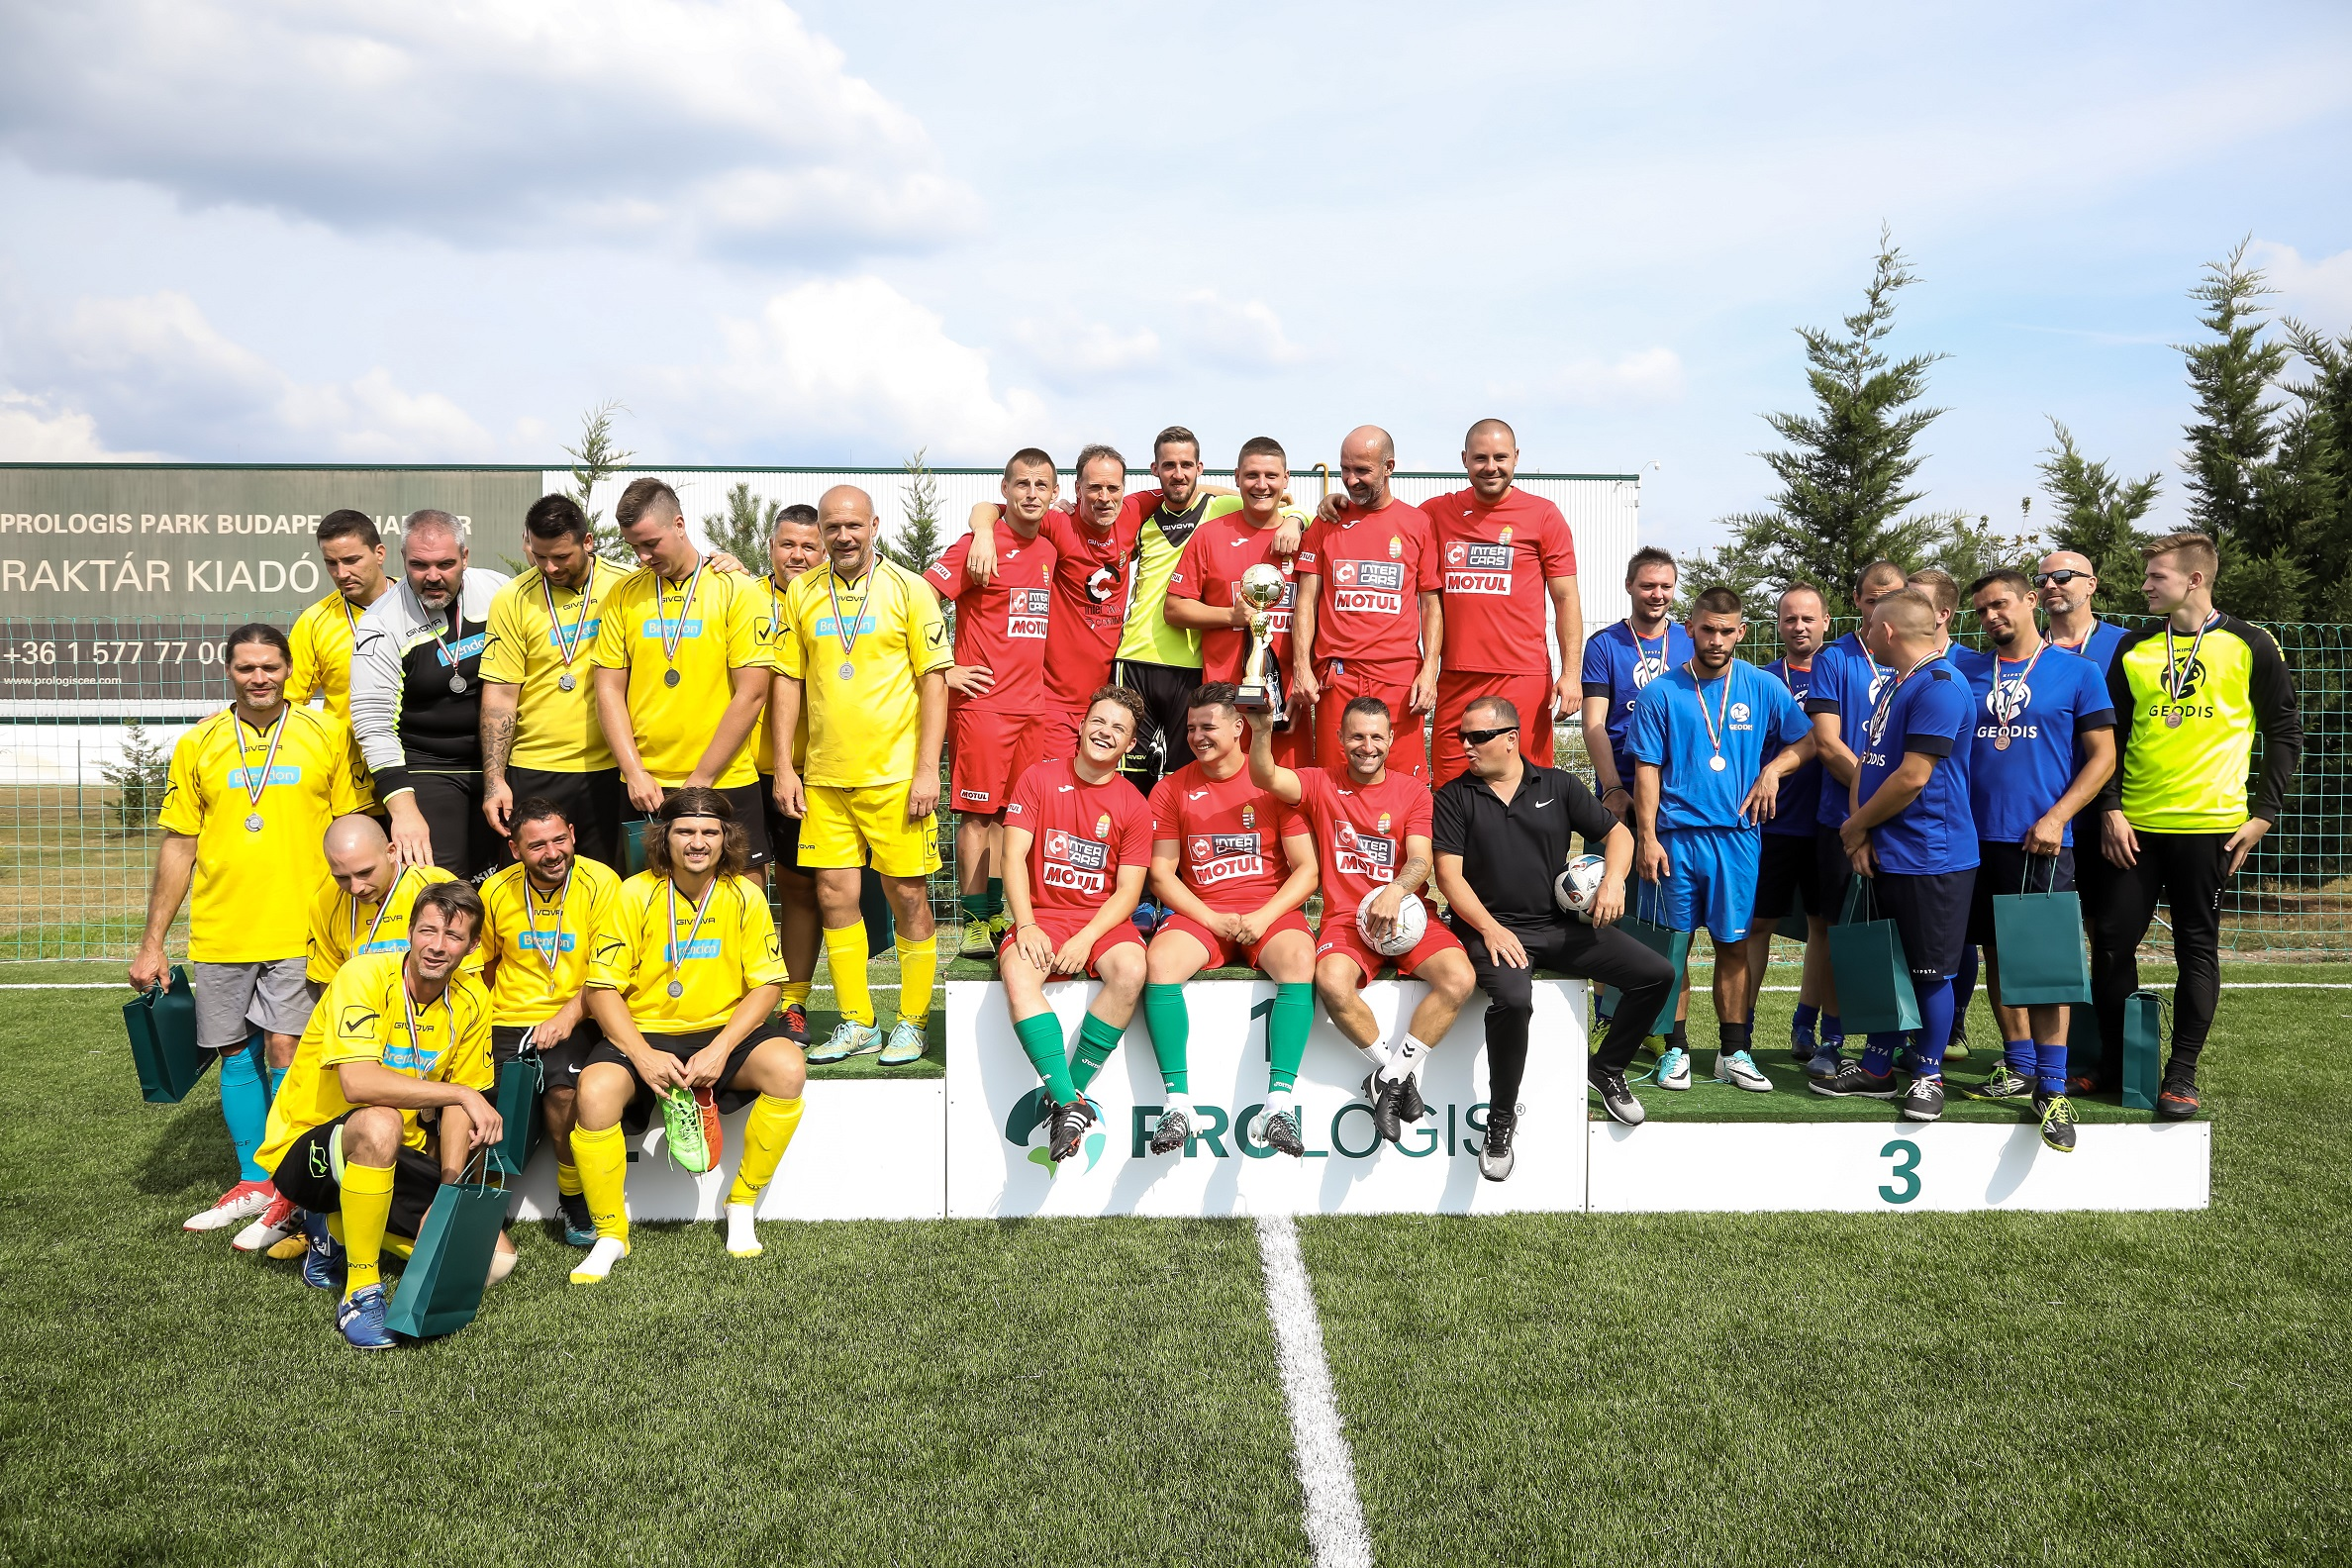 Winners of 6th Prologis Budapest Football Games